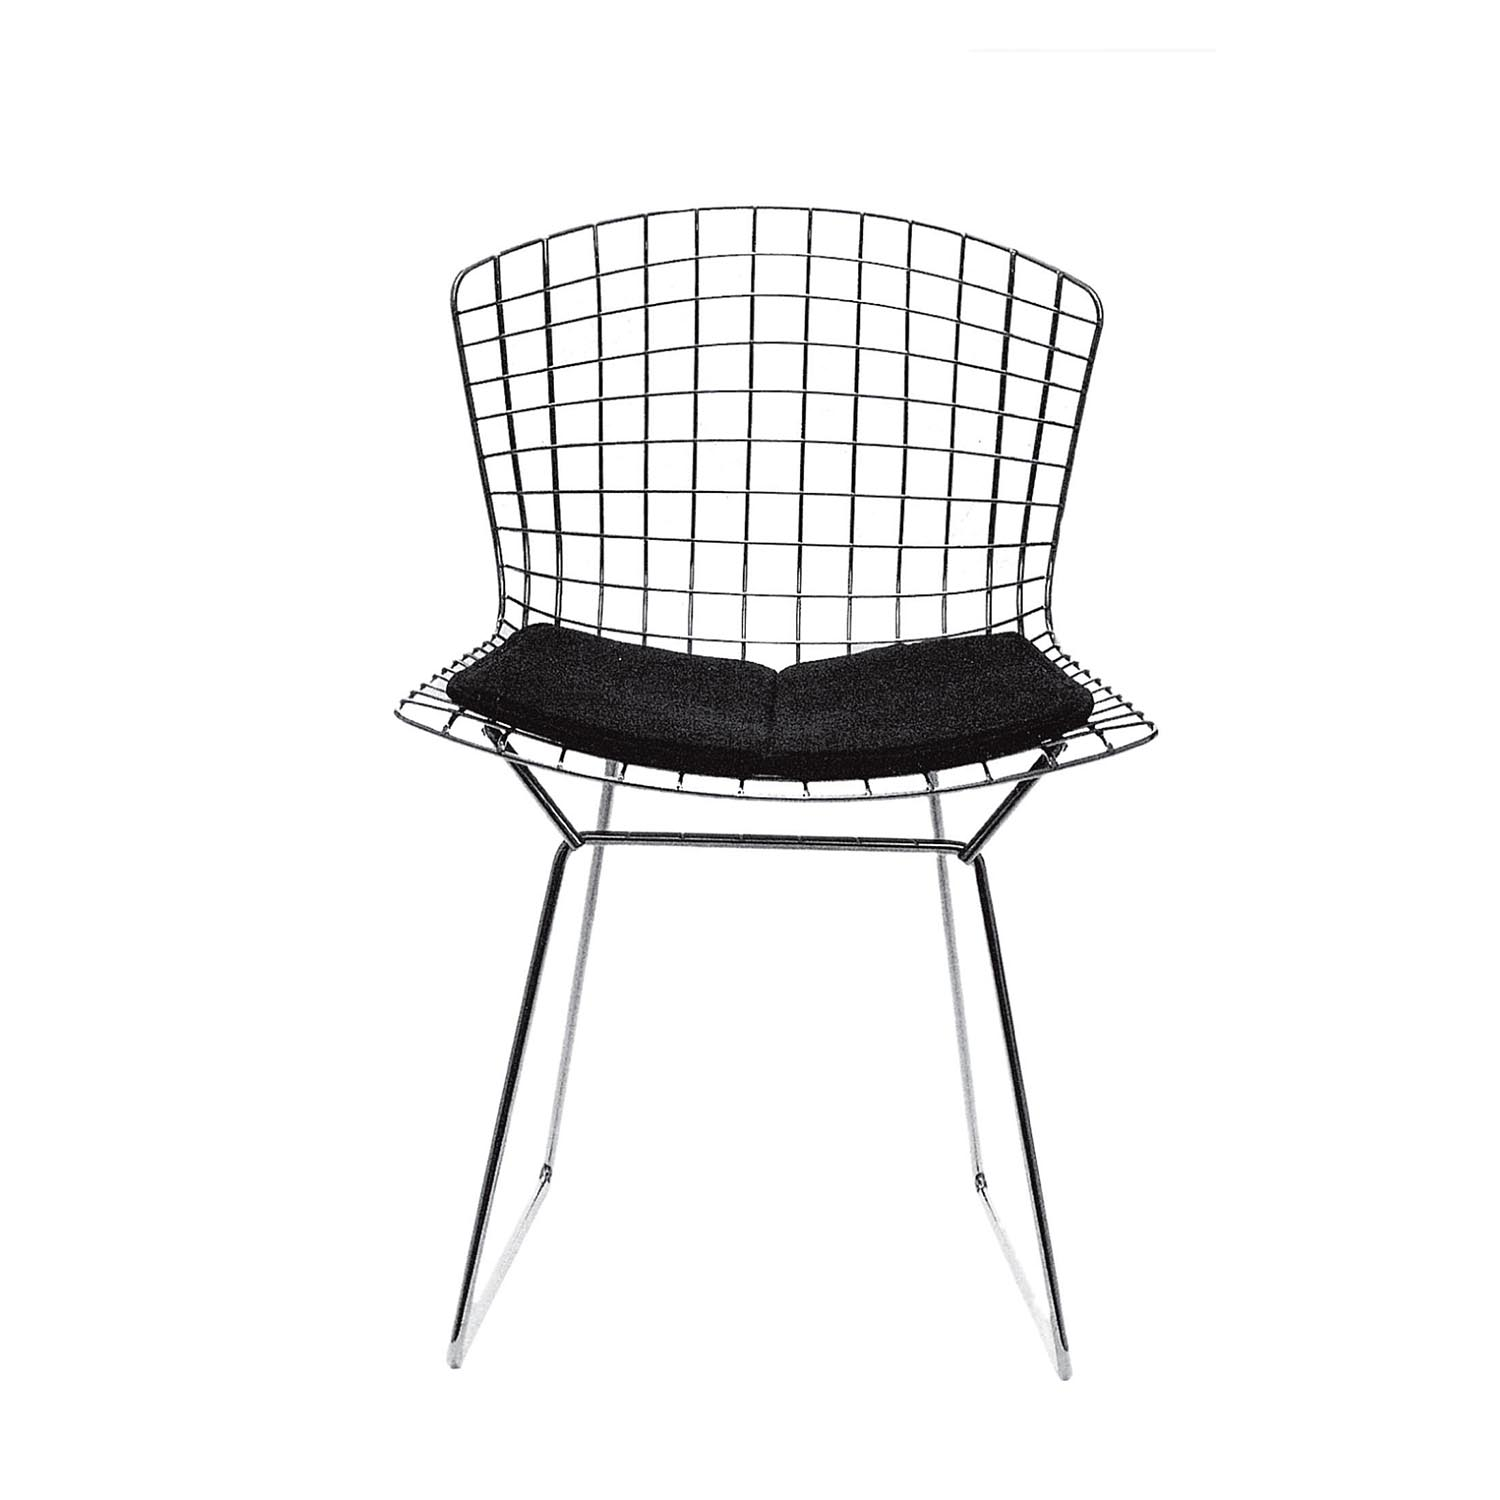 Chair by Harry Bertoia